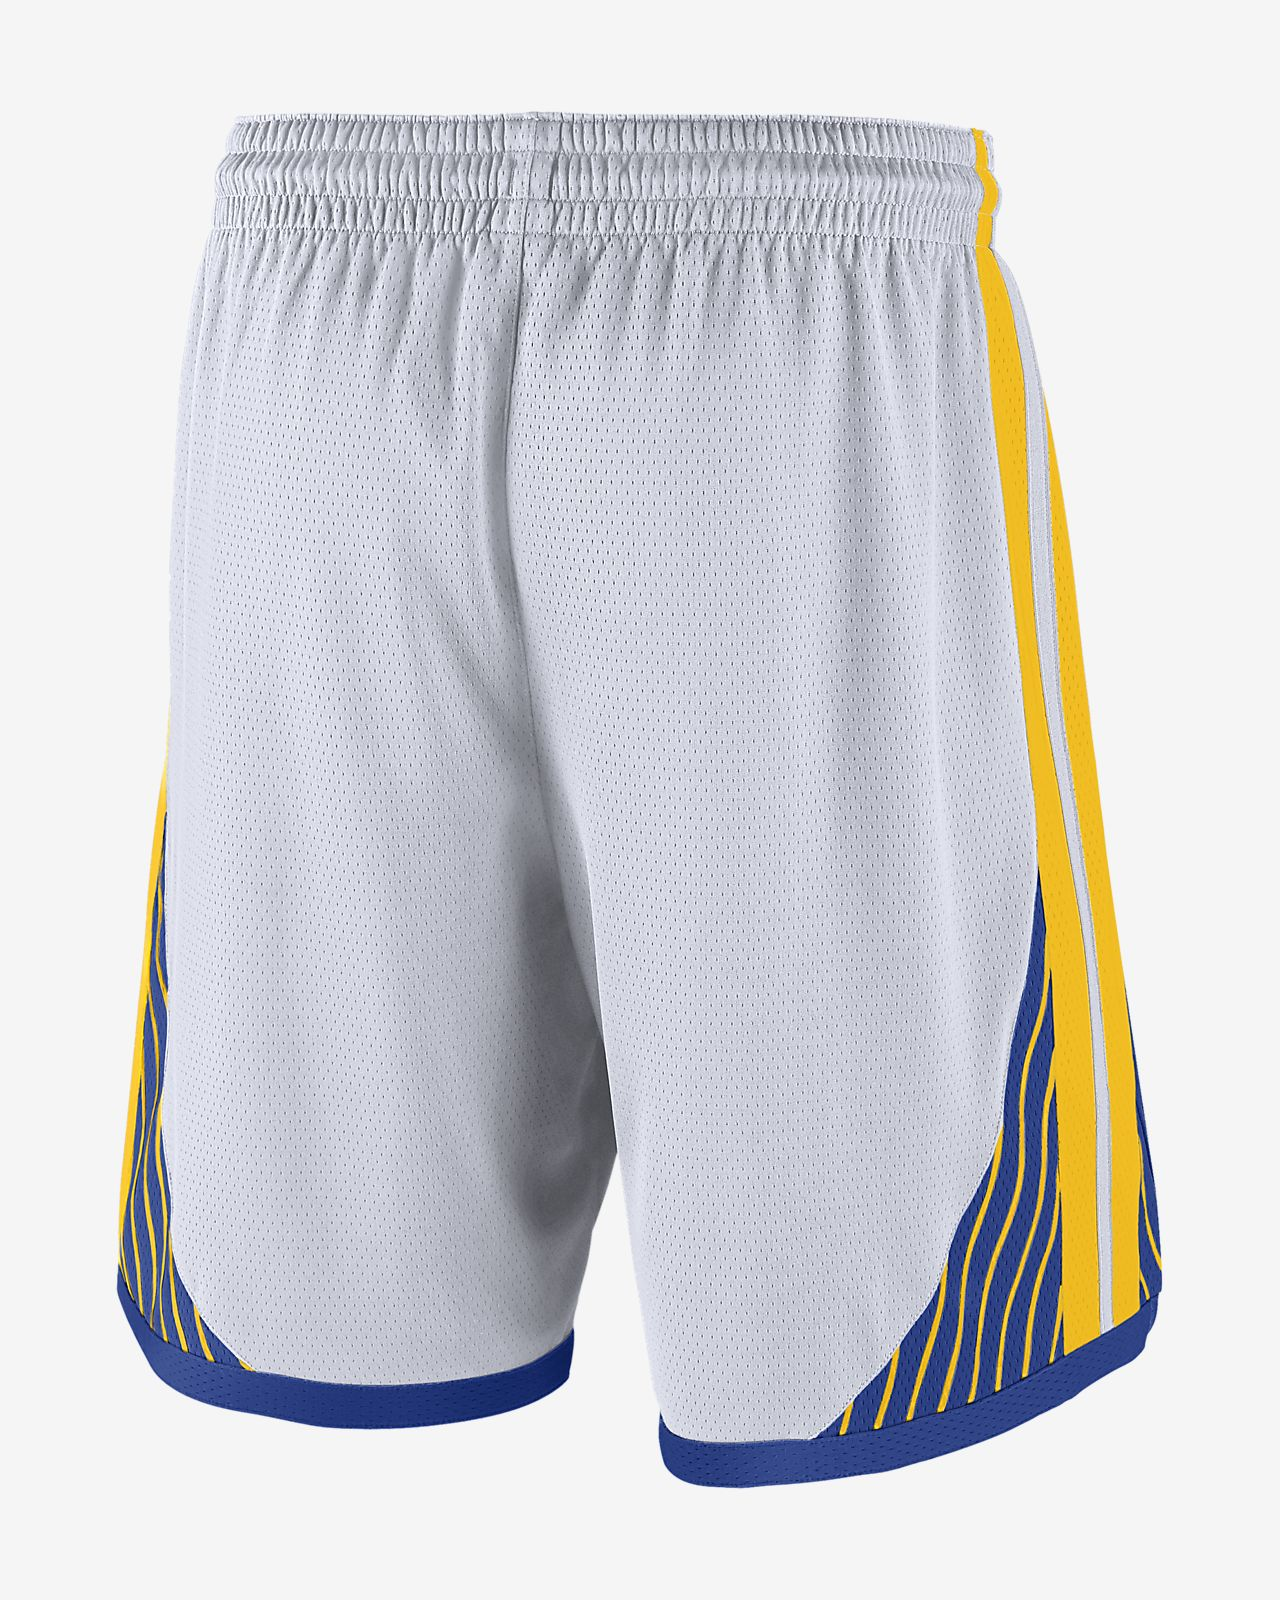 NIKE NBA GOLDEN STATE WARRIORS ASSOCIATION EDITION SWINGMAN